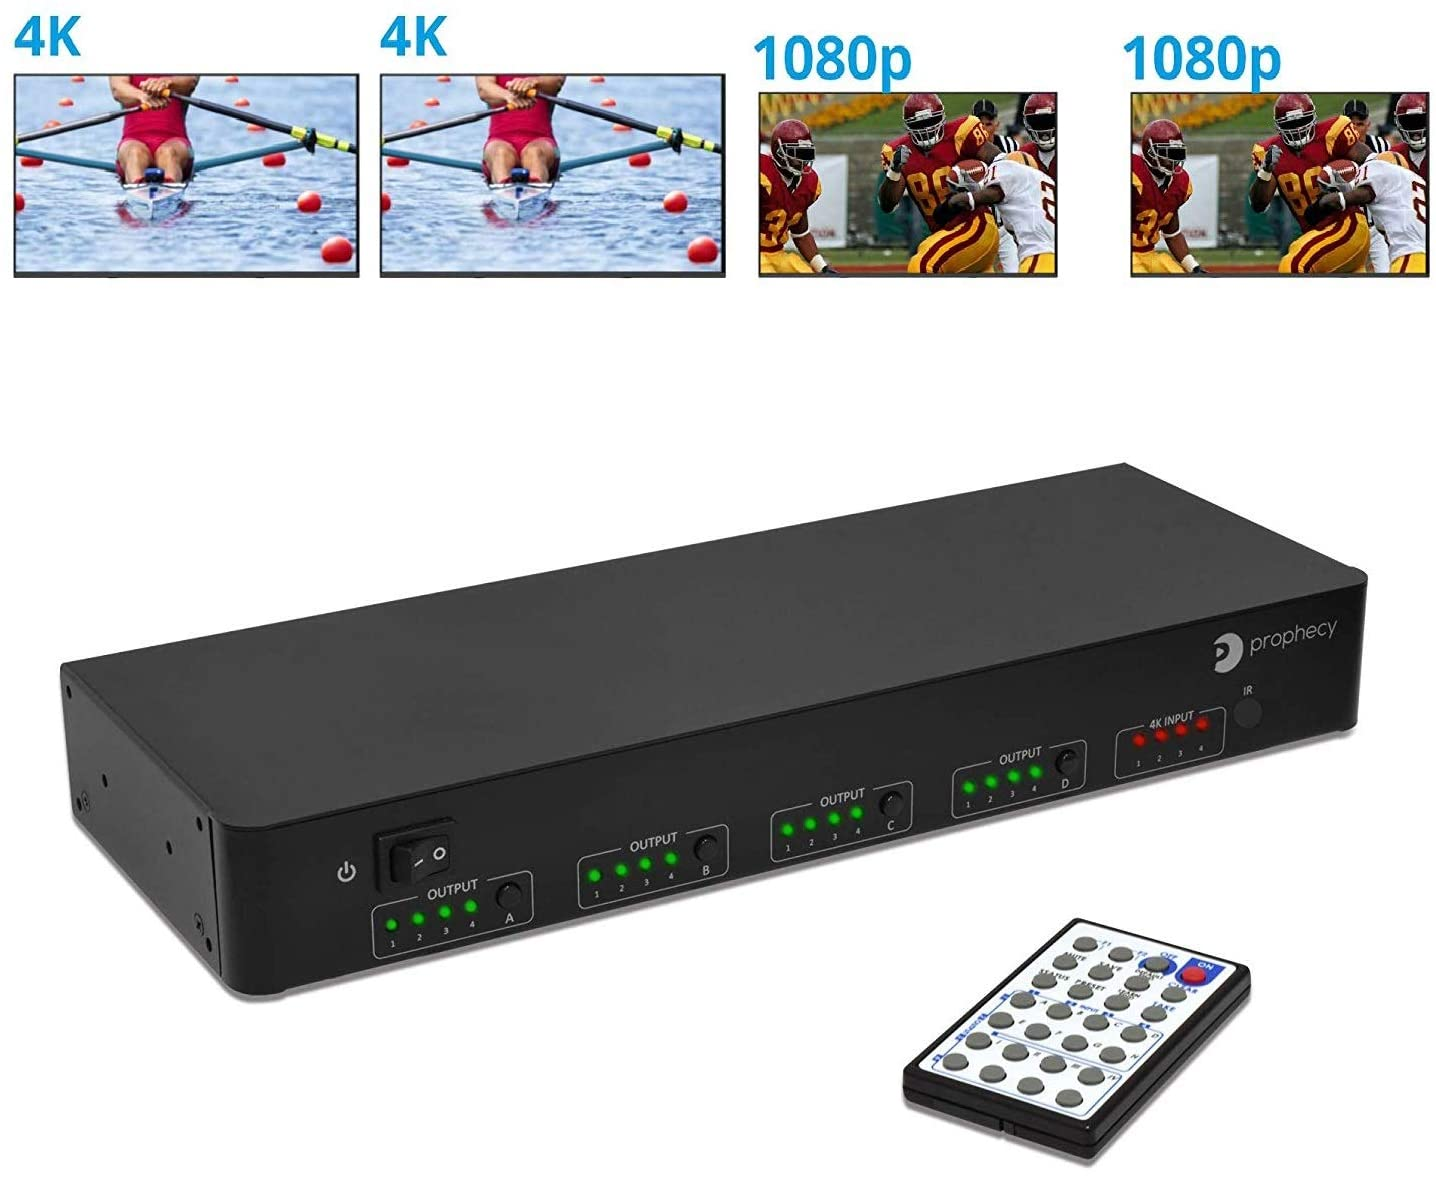 gofanco Intelligent 4x4 HDMI Matrix Switch 4K 60Hz YUV 4:4:4 HDR with Auto Downscaling (Output 4K & 1080p Together) & Alexa Echo Voice Control, HDMI 2.0, HDCP 2.2, 18Gbps, IR, RS-232, Control4